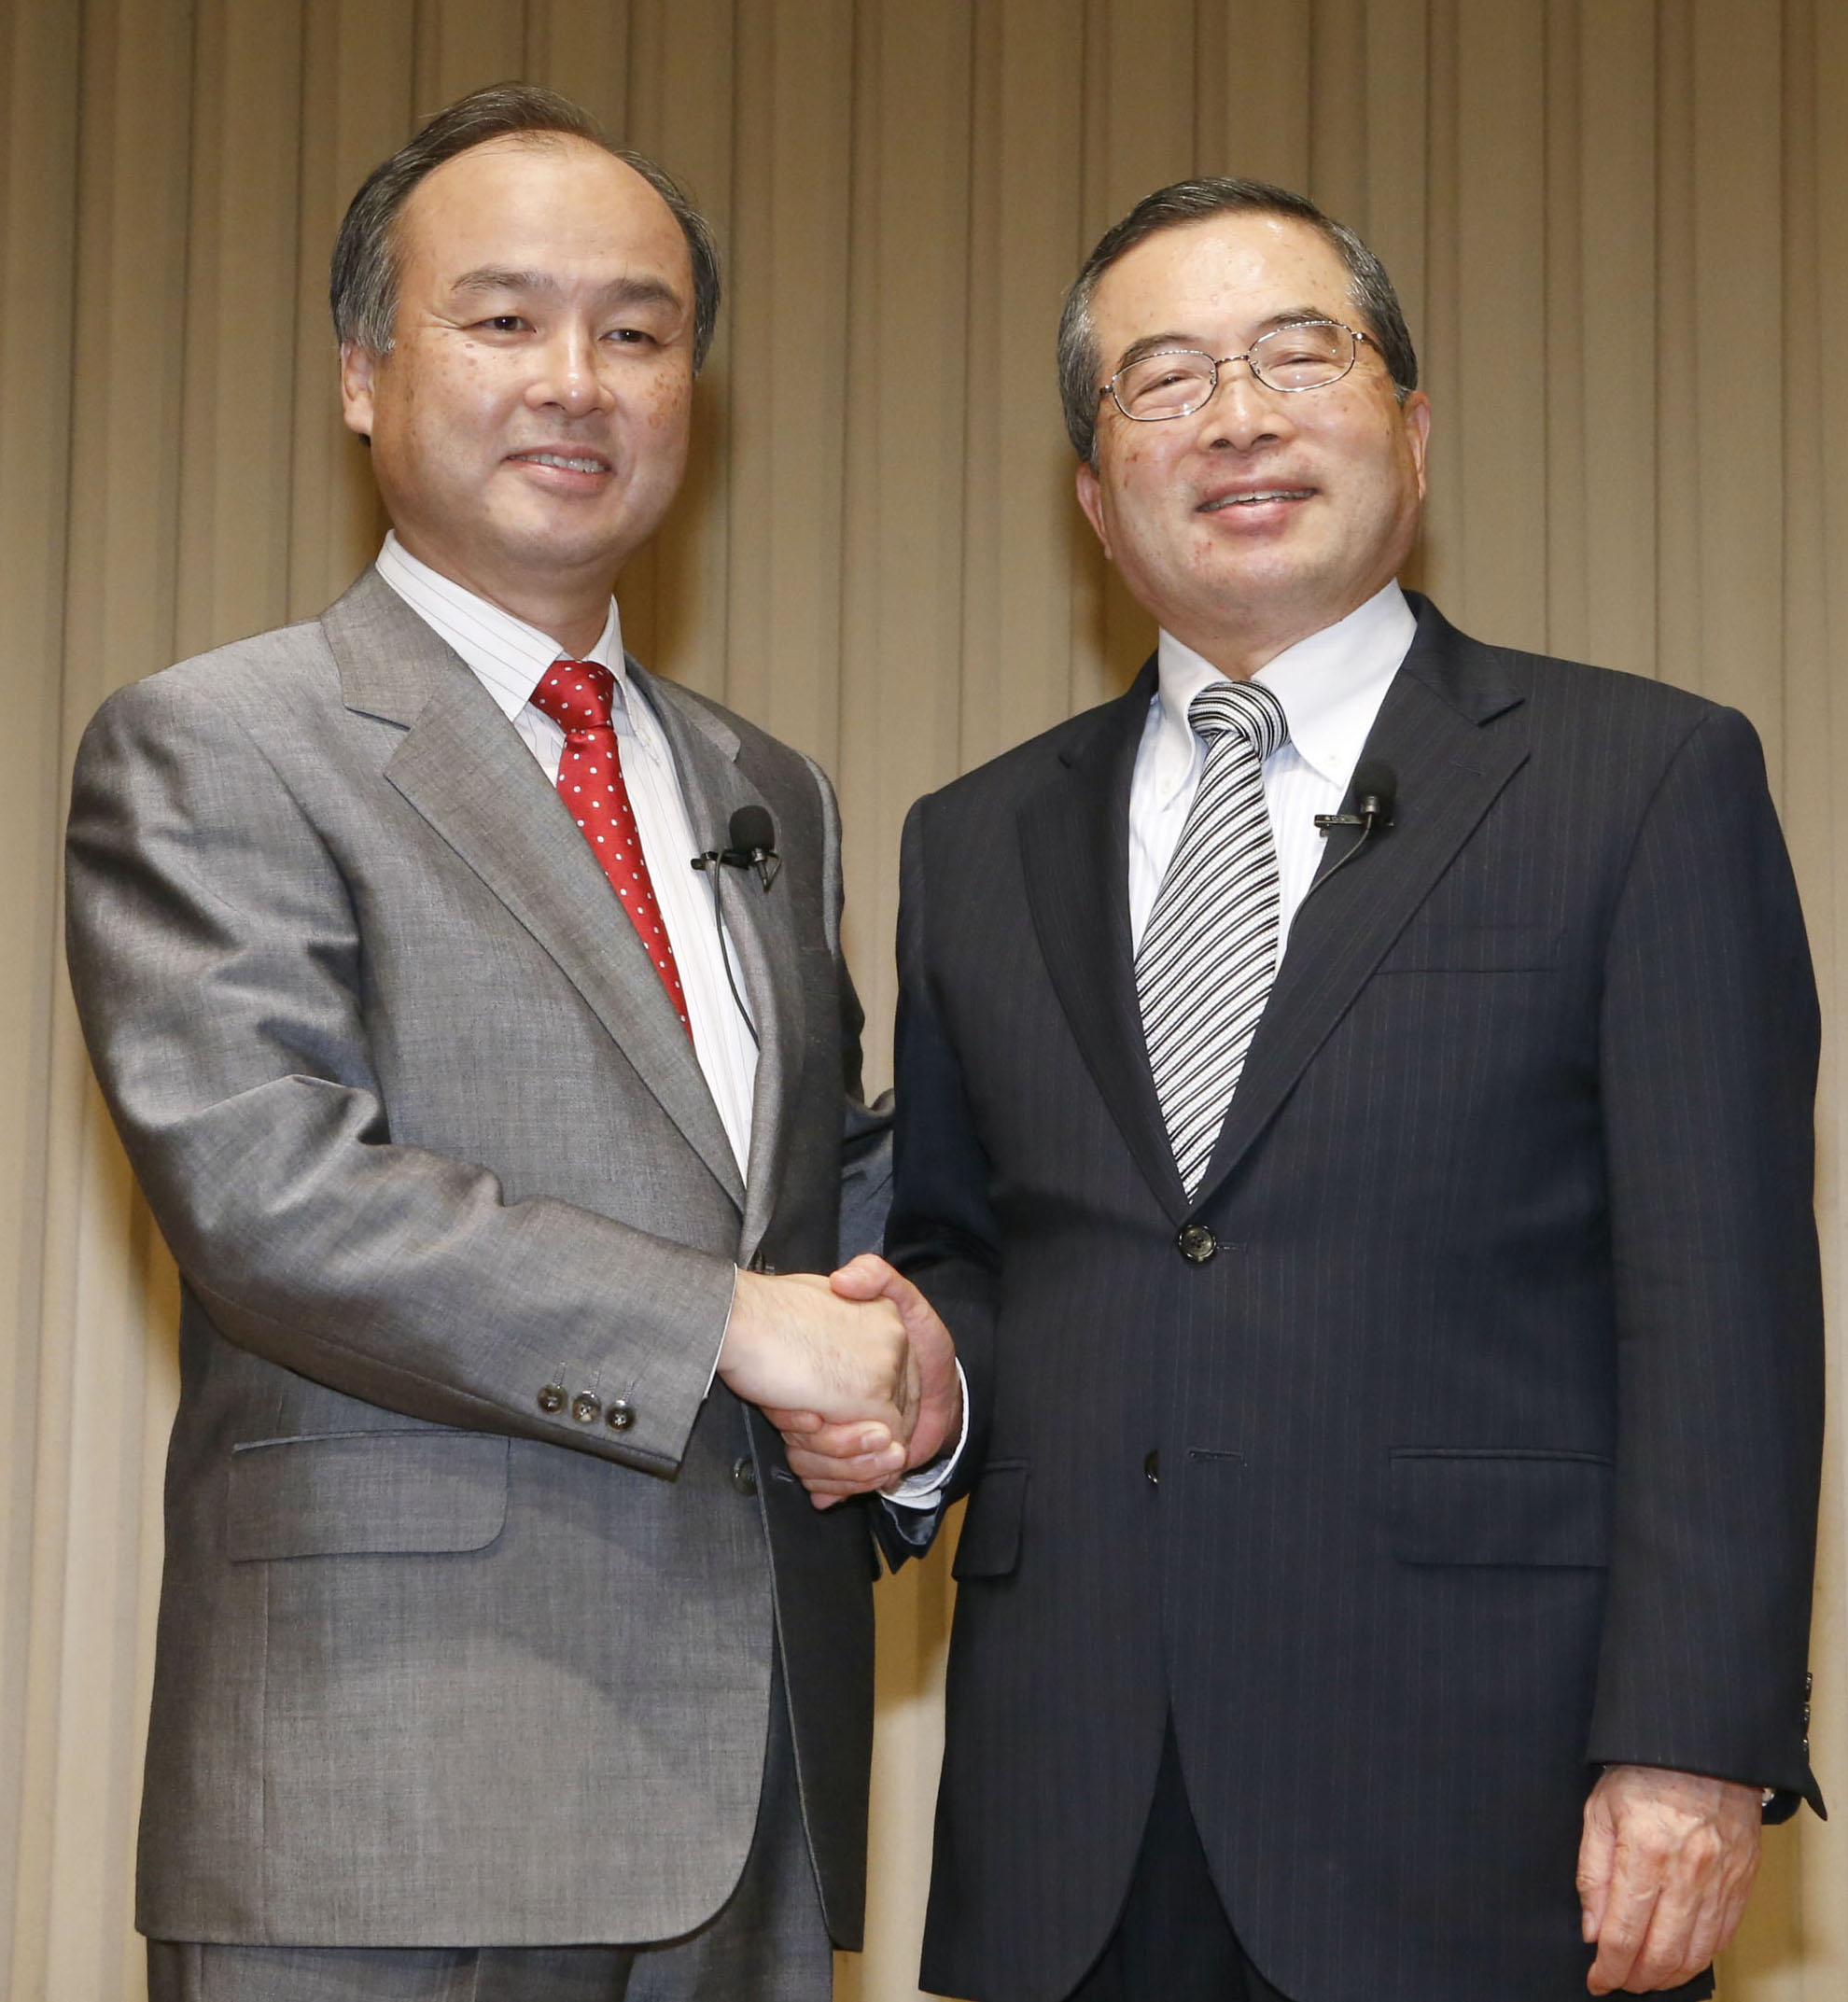 Hot line: Softbank Corp.'s acquisition of eAccess Ltd. is announced by Softbank CEO Masayoshi Son (left) and eAccess Ltd. Chairman Sachio Senmoto at a news conference Sept. 1 in Tokyo. The release of Apple Inc.'s iPhone 5 handset is behind Softbank's move to expand its infrastructure. | KYODO